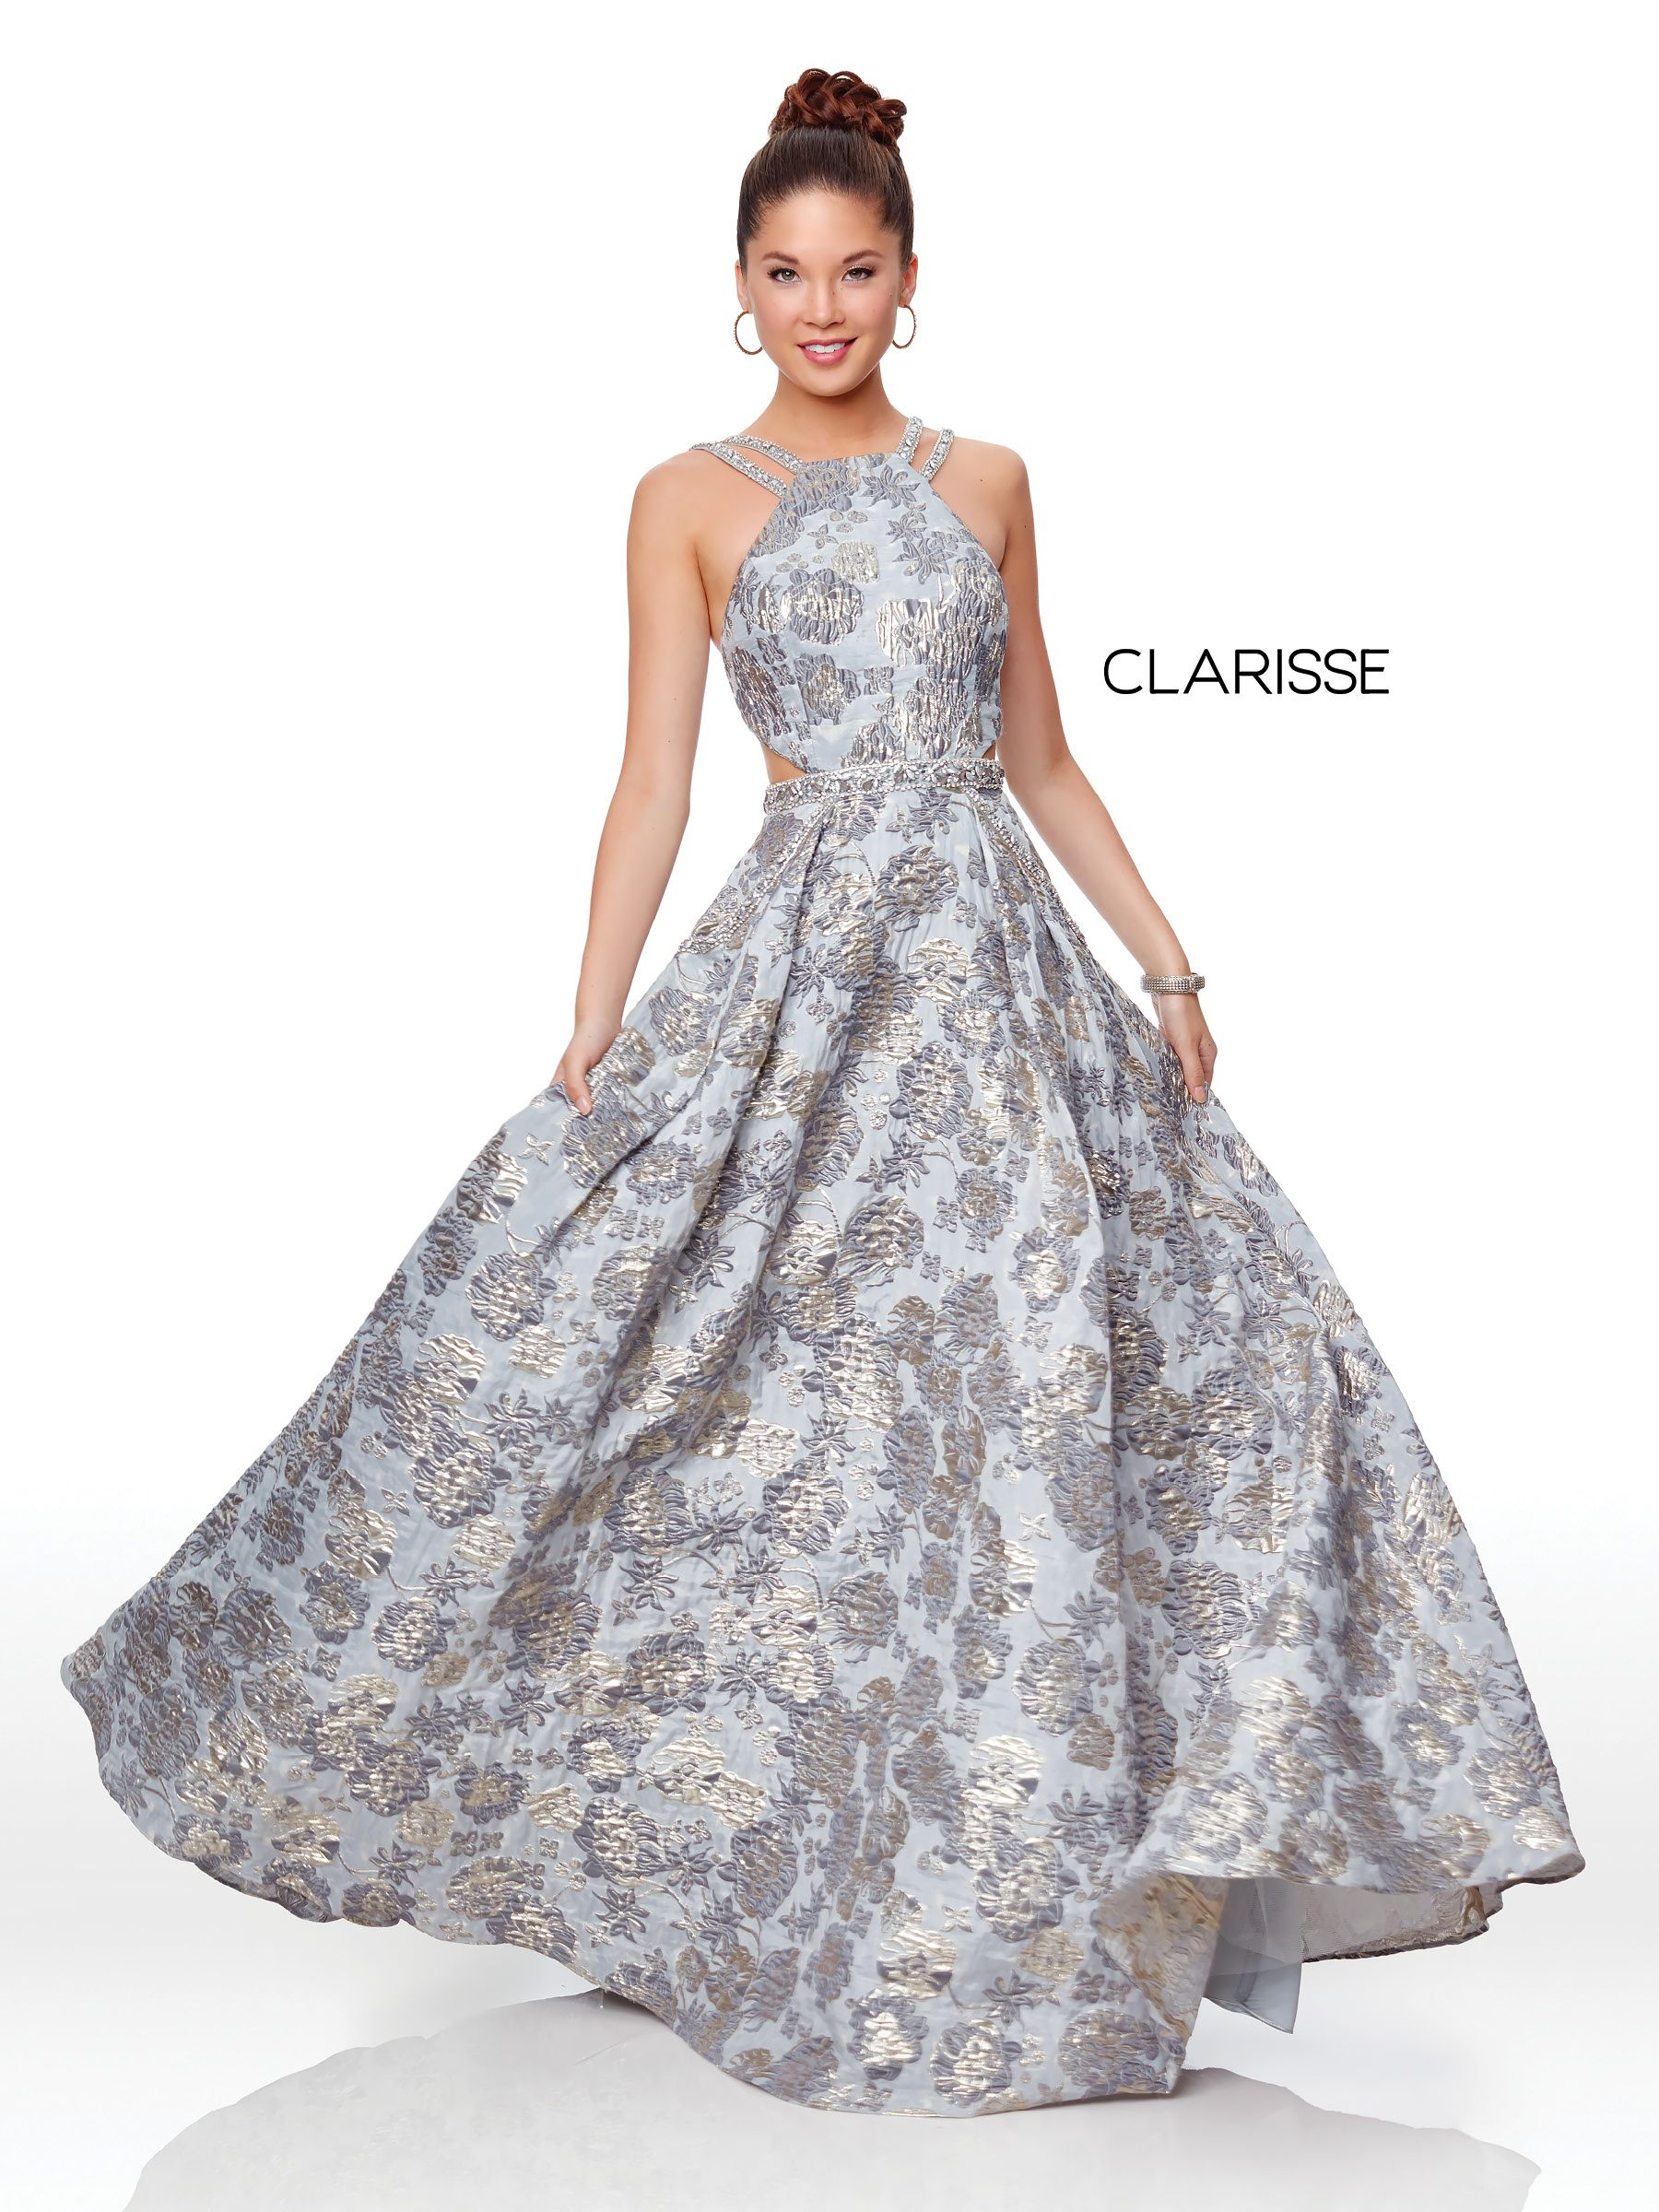 386714e4d3d9 5058 - Silver floral print ball gown with a high neckline and beaded belt